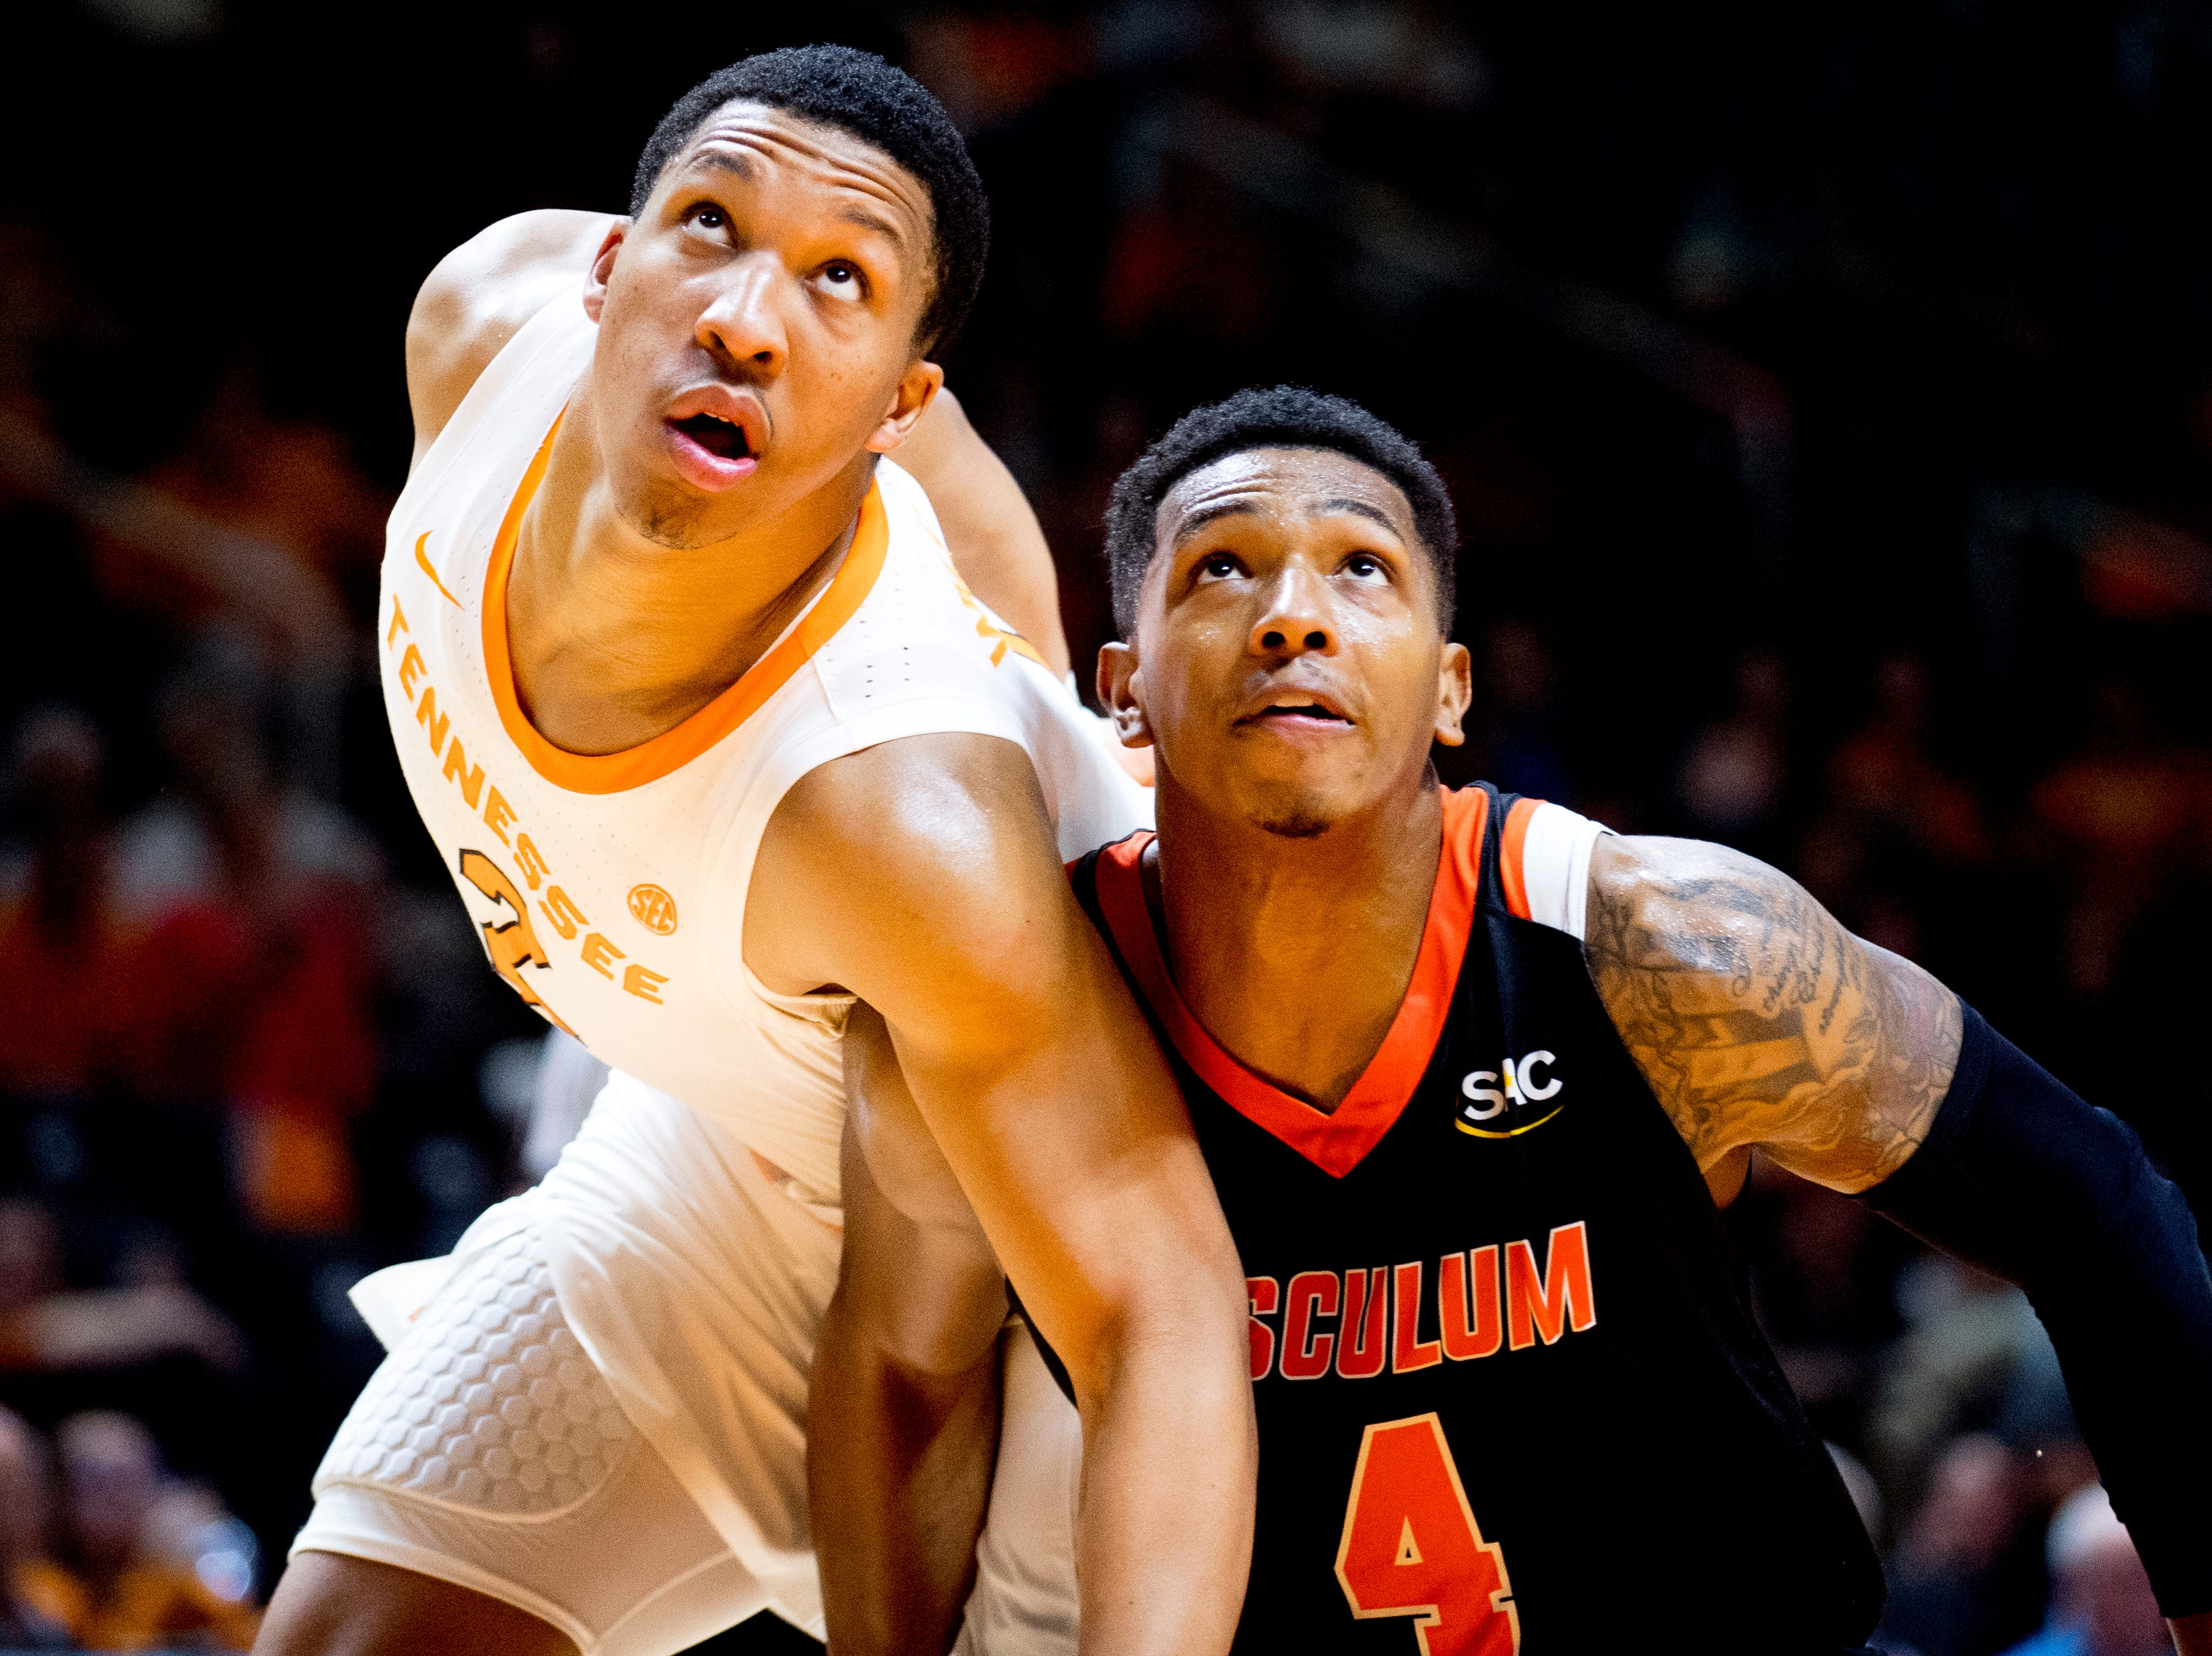 Tennessee forward Grant Williams (2) and Tusculum guard Jackie Davis (4) eye the ball during a game between Tennessee and Tusculum at Thompson-Boling Arena in Knoxville, Tennessee on Wednesday, October 31, 2018.